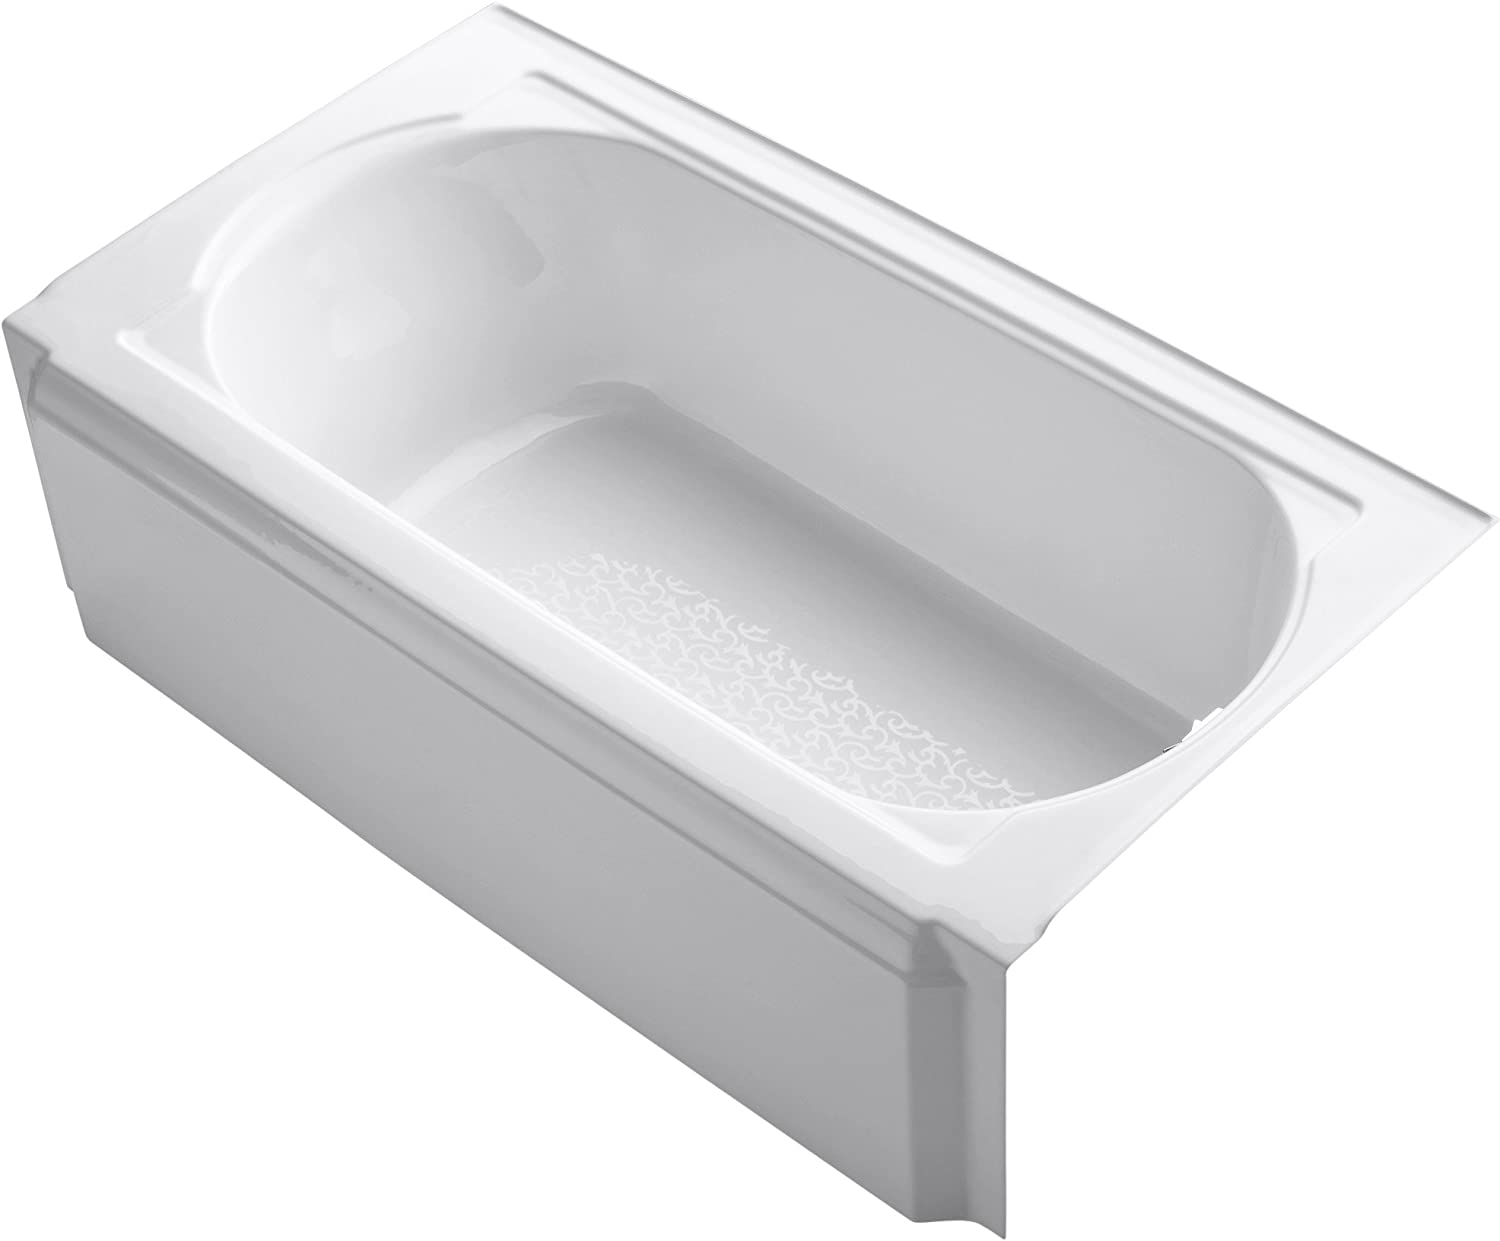 KOHLER K-722-0 Memoirs 5-Foot Bath, White